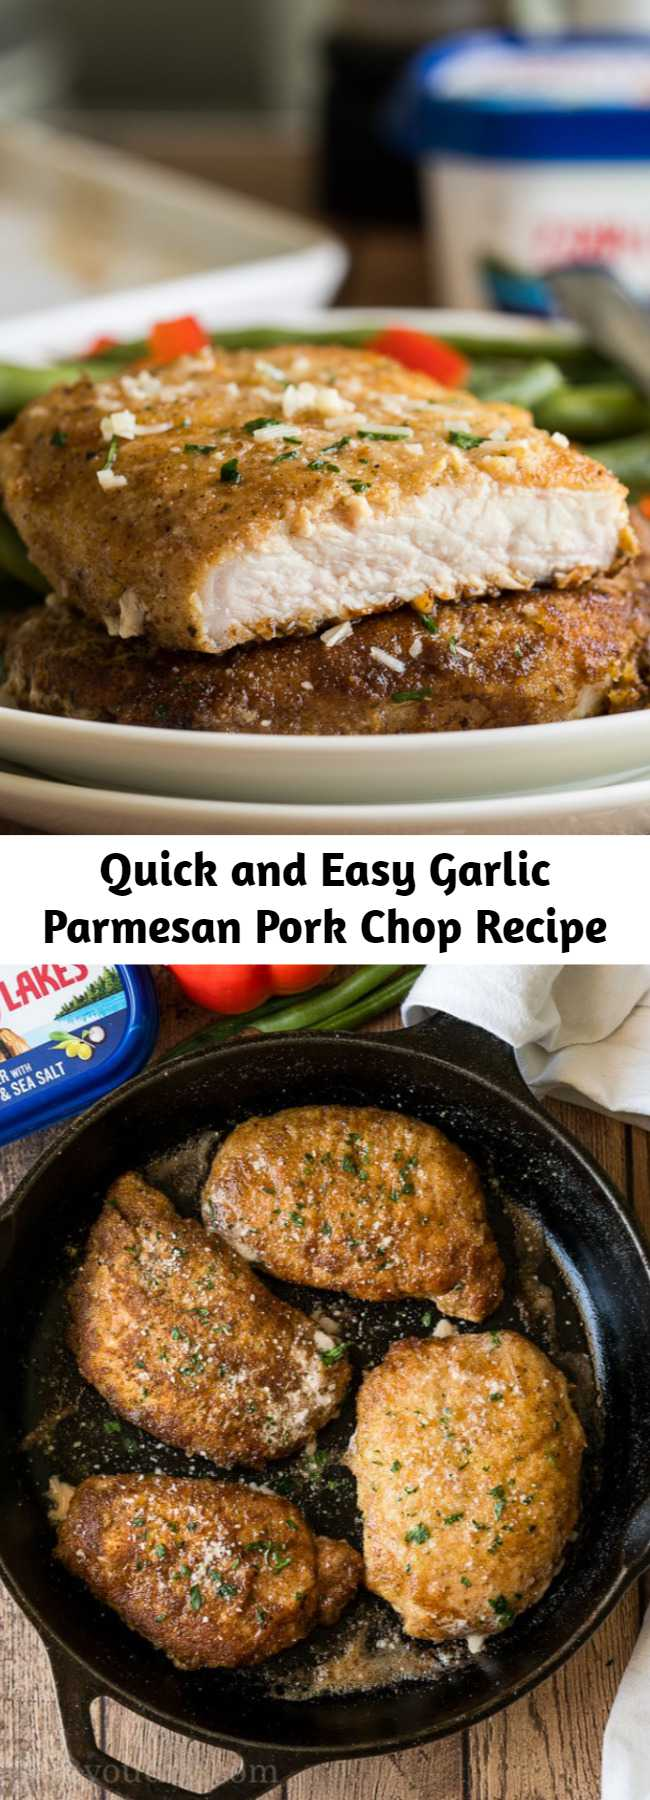 Quick and Easy Garlic Parmesan Pork Chop Recipe - This Garlic Parmesan Pork Chop Recipe is super quick and easy to make with a crispy Parmesan crust on the outside.